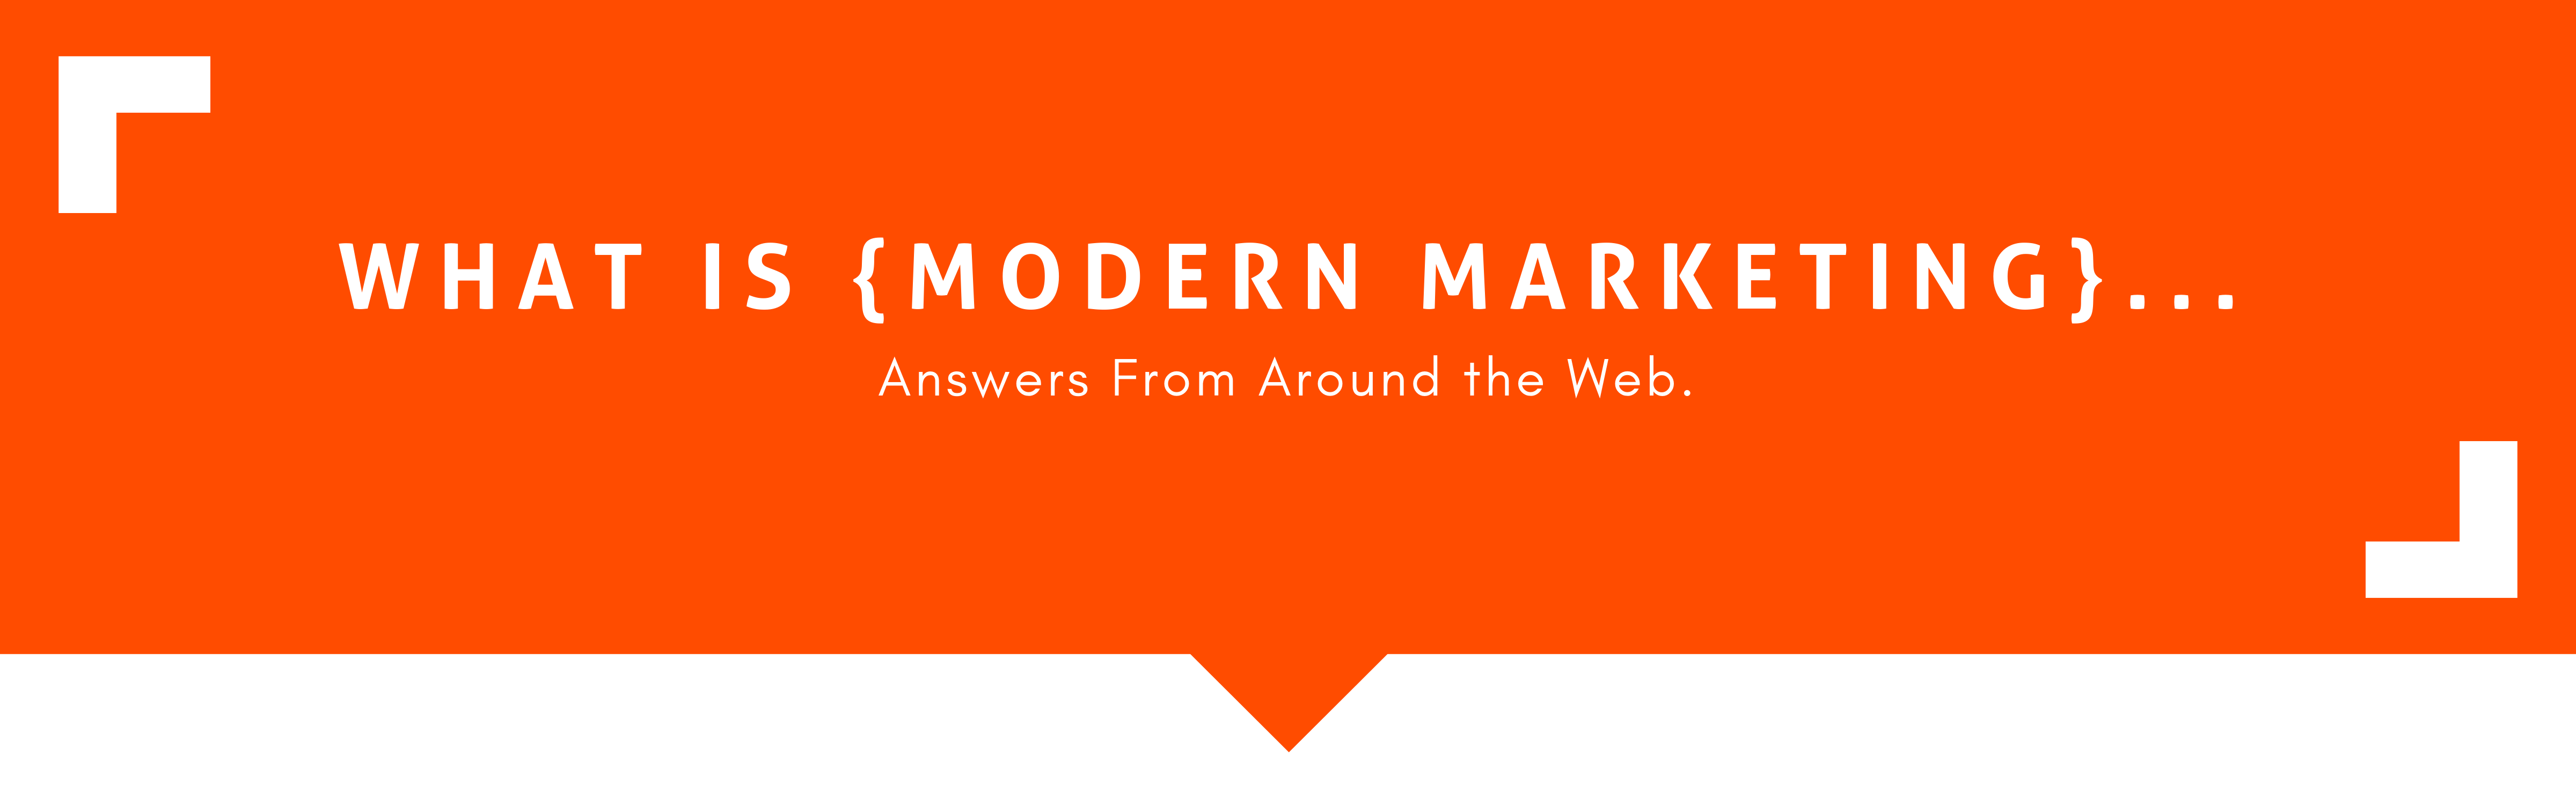 What is modern marketing?